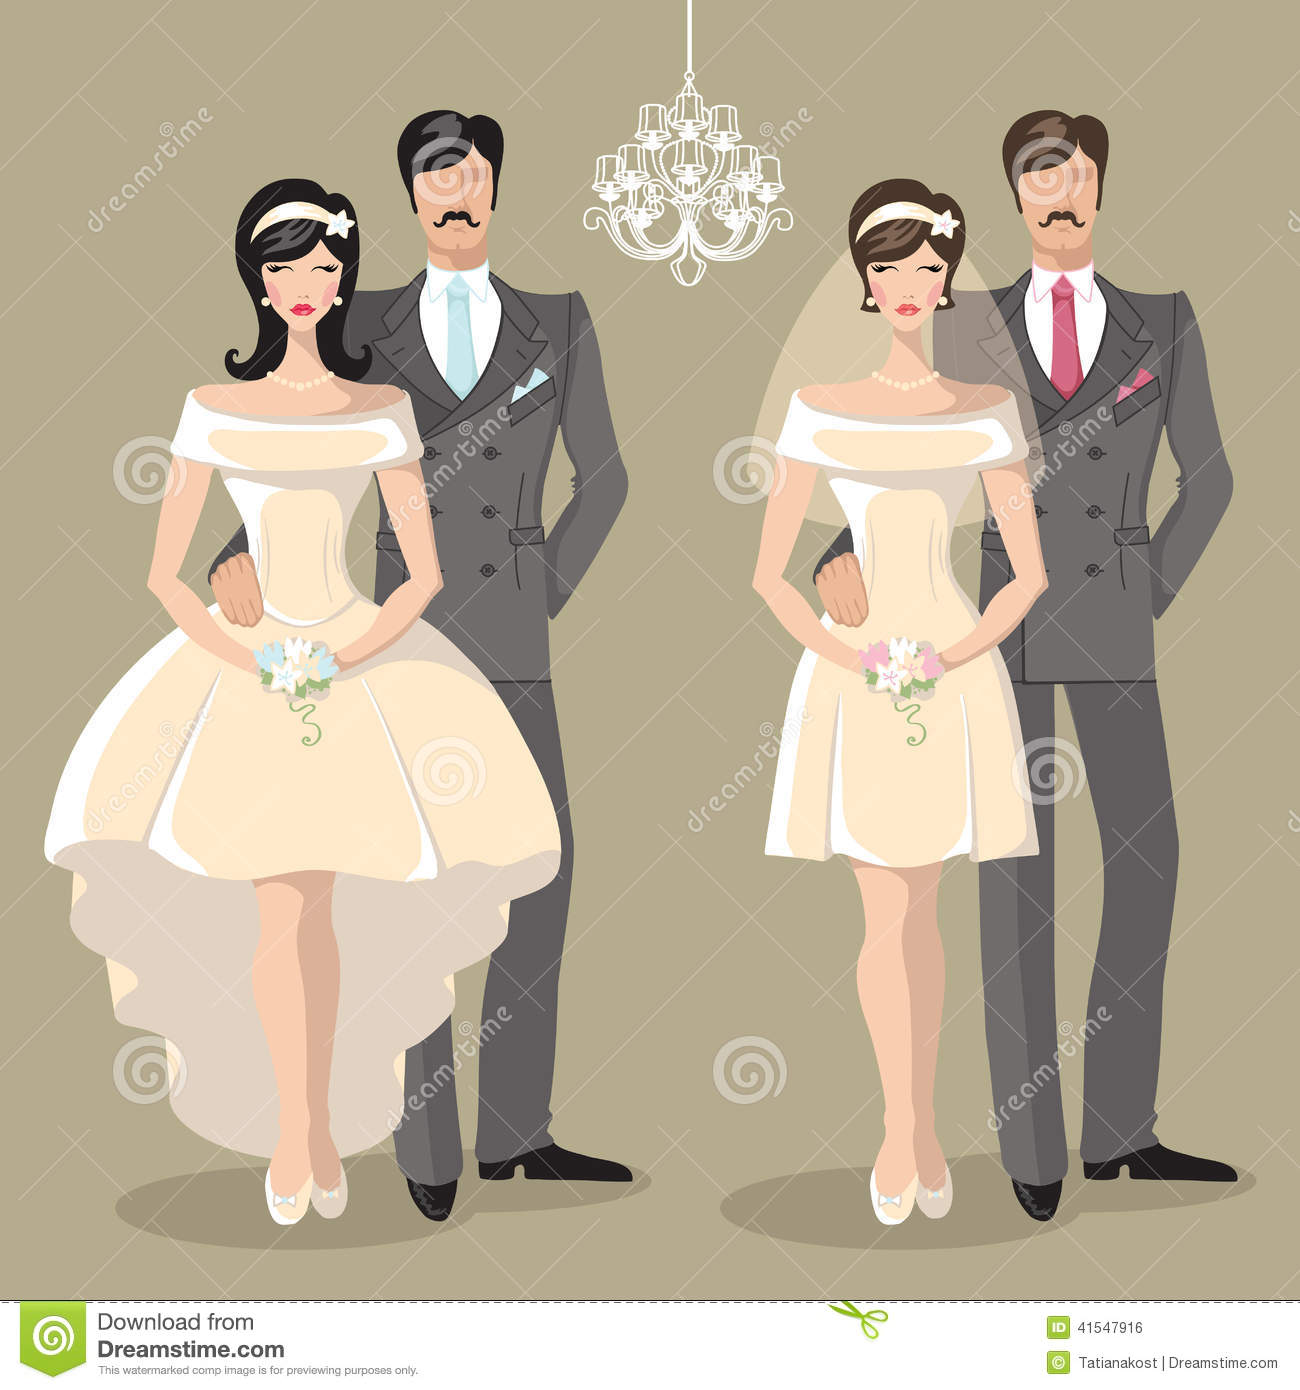 at-the-asian-brides-cartoon